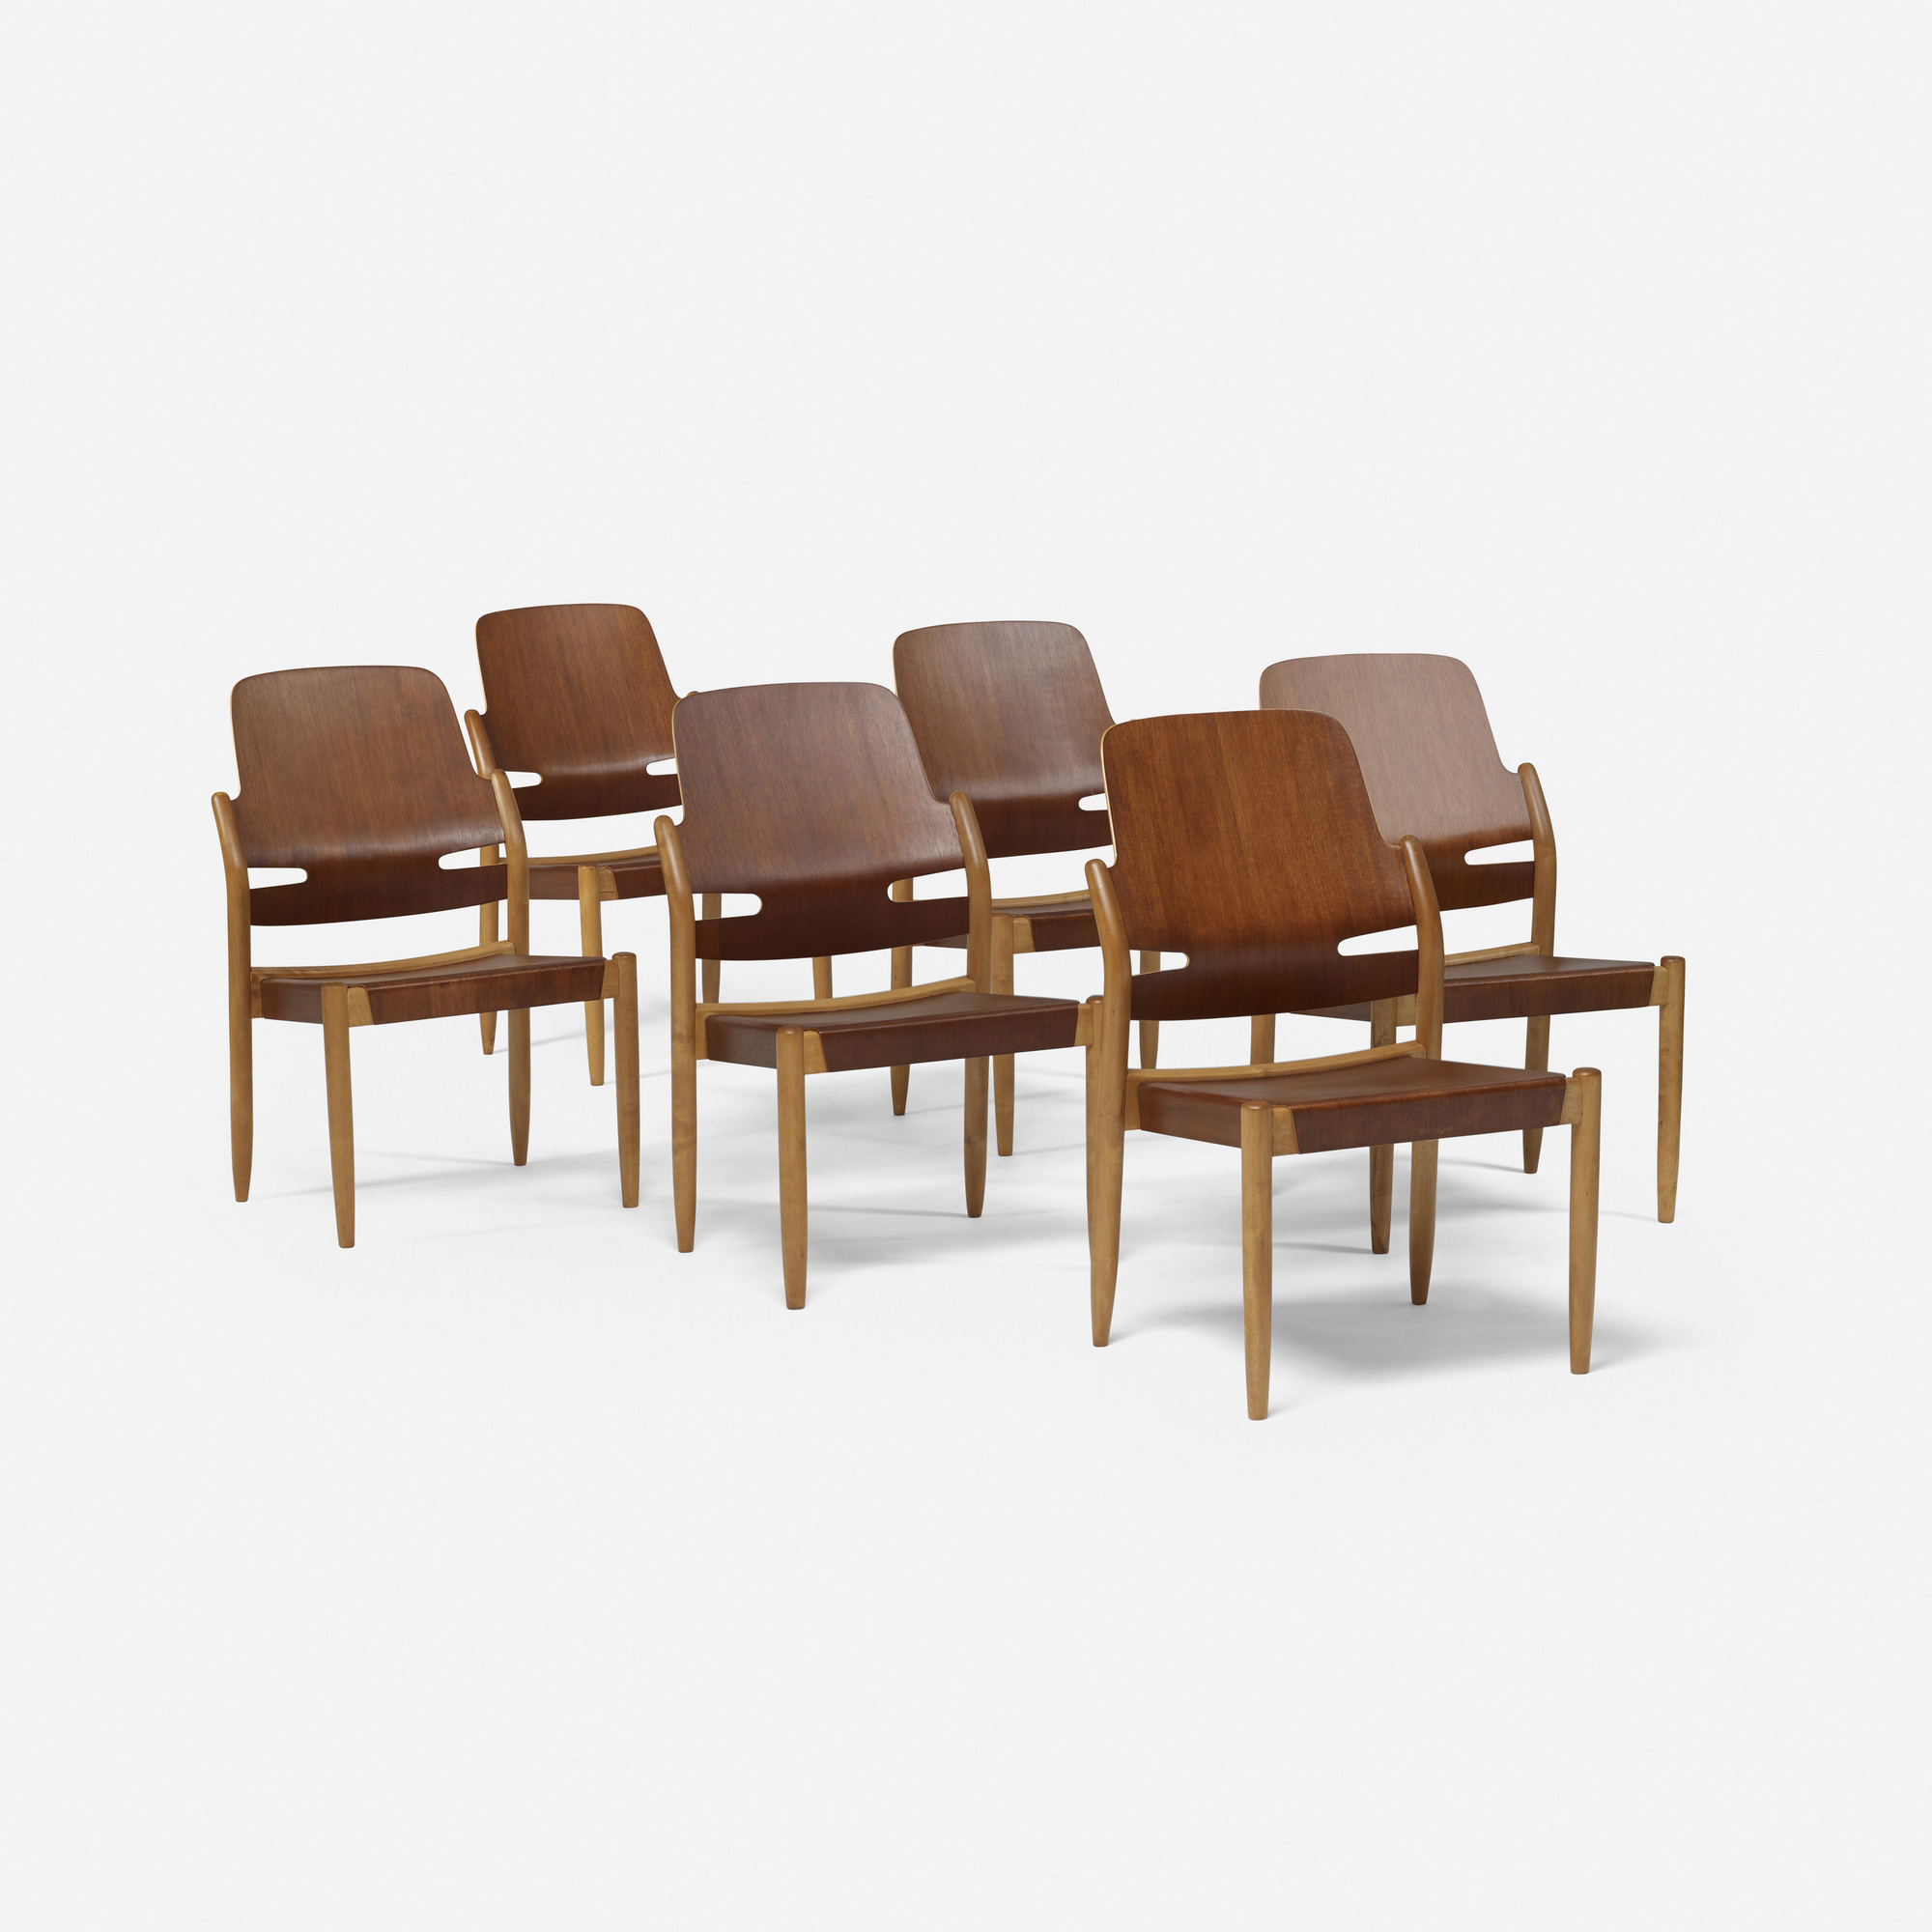 109 Carl Axel Acking dining chairs set of six Scandinavian